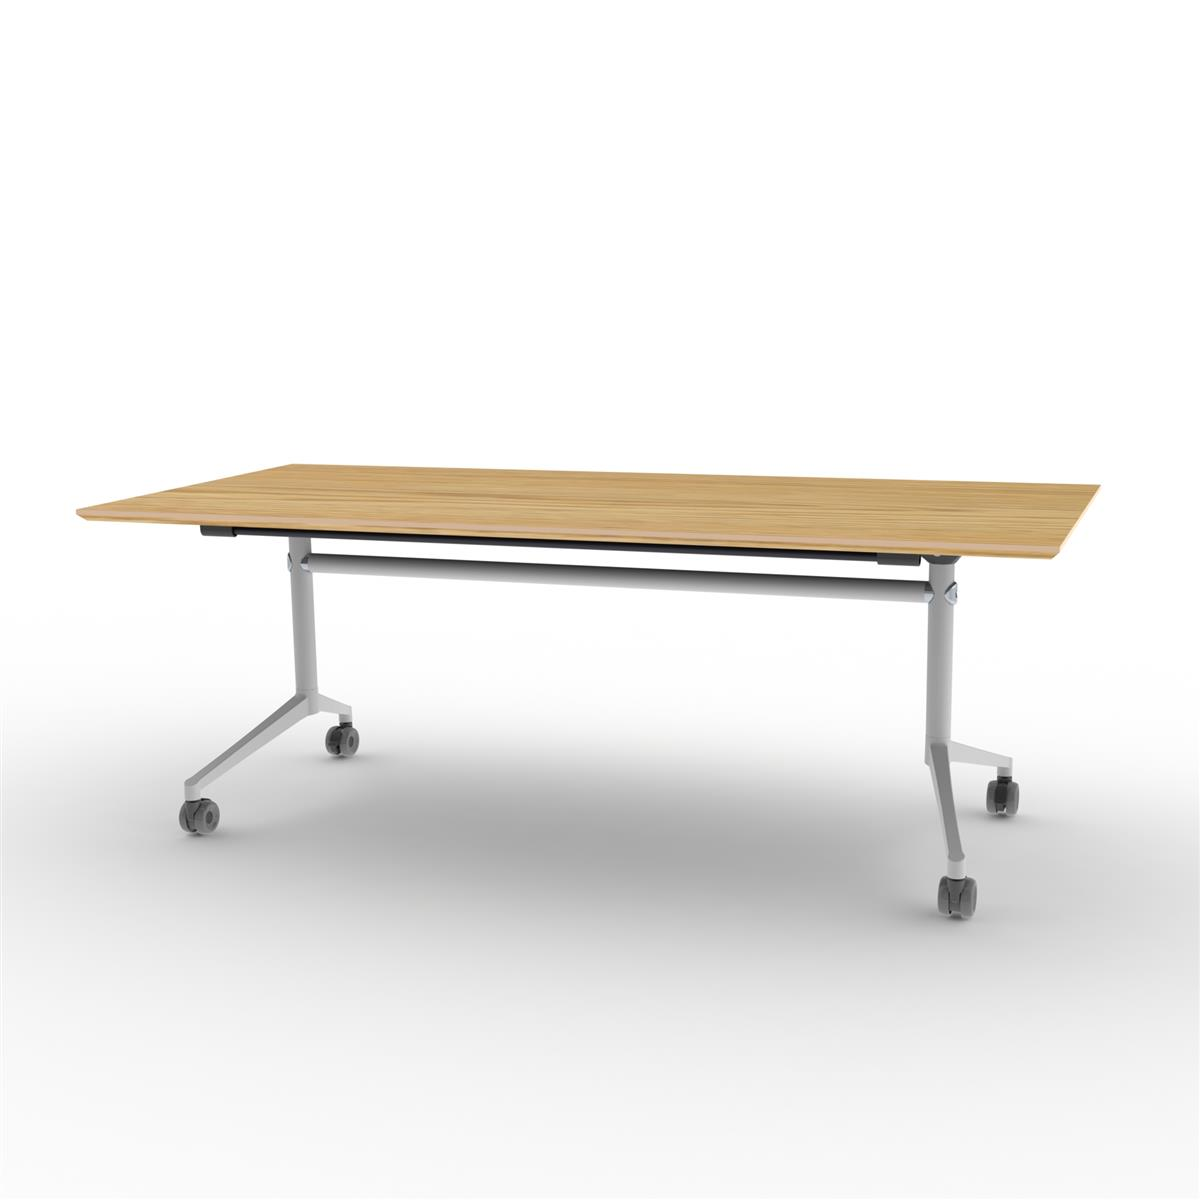 X1 Seamless Folding Table 200x90 cm med eikefinérog hvitt understell